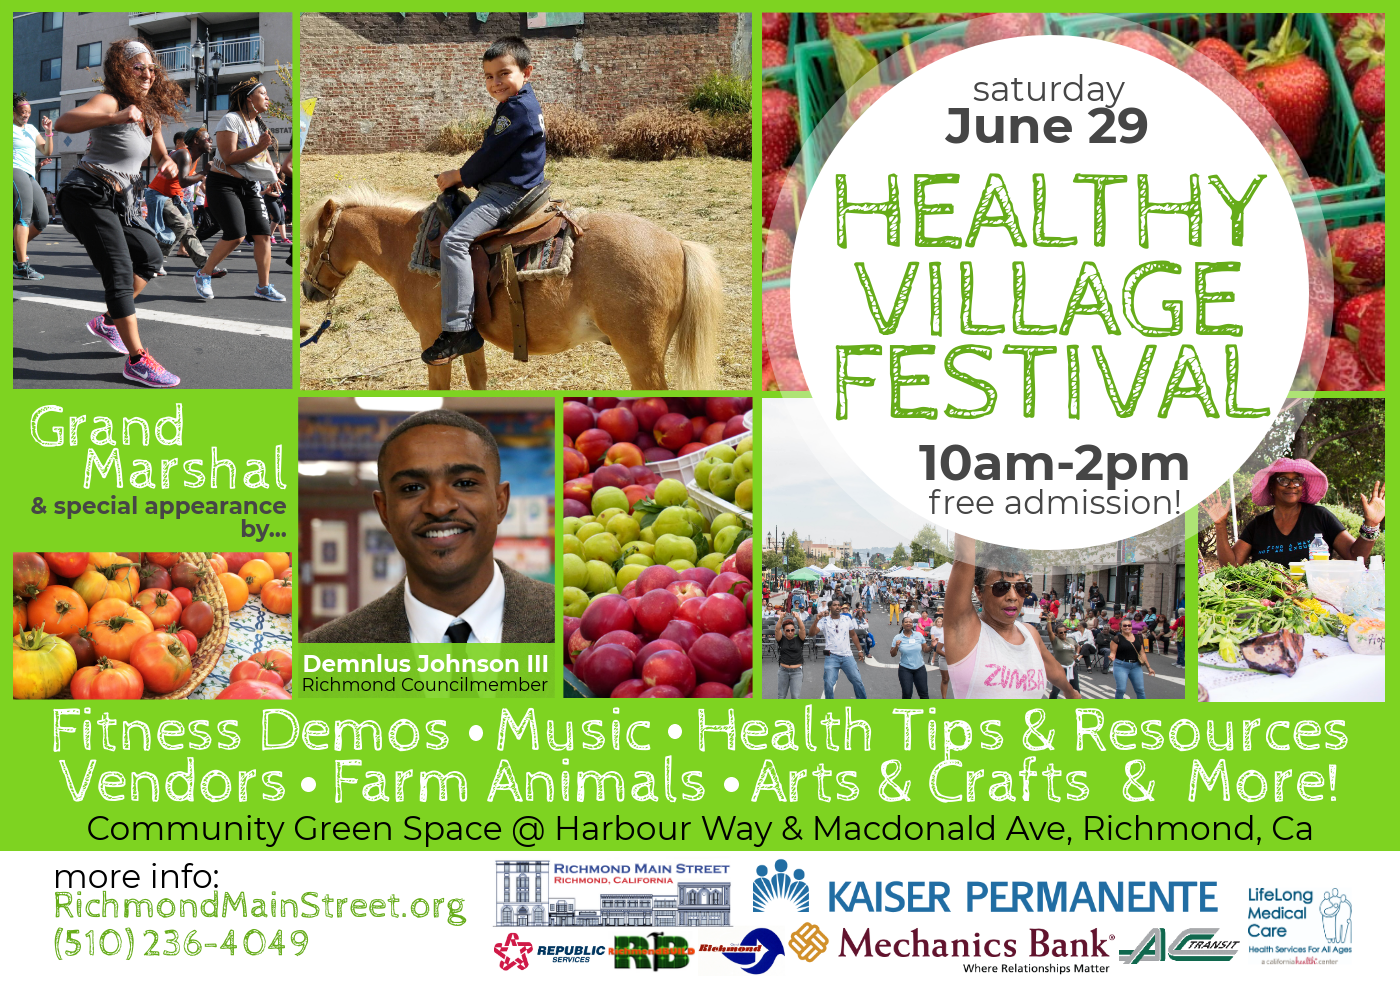 Media Alert: Summer in Downtown Richmond Starts with Healthy Village Festival Featuring Grand Marshal Demnlus Johnson III